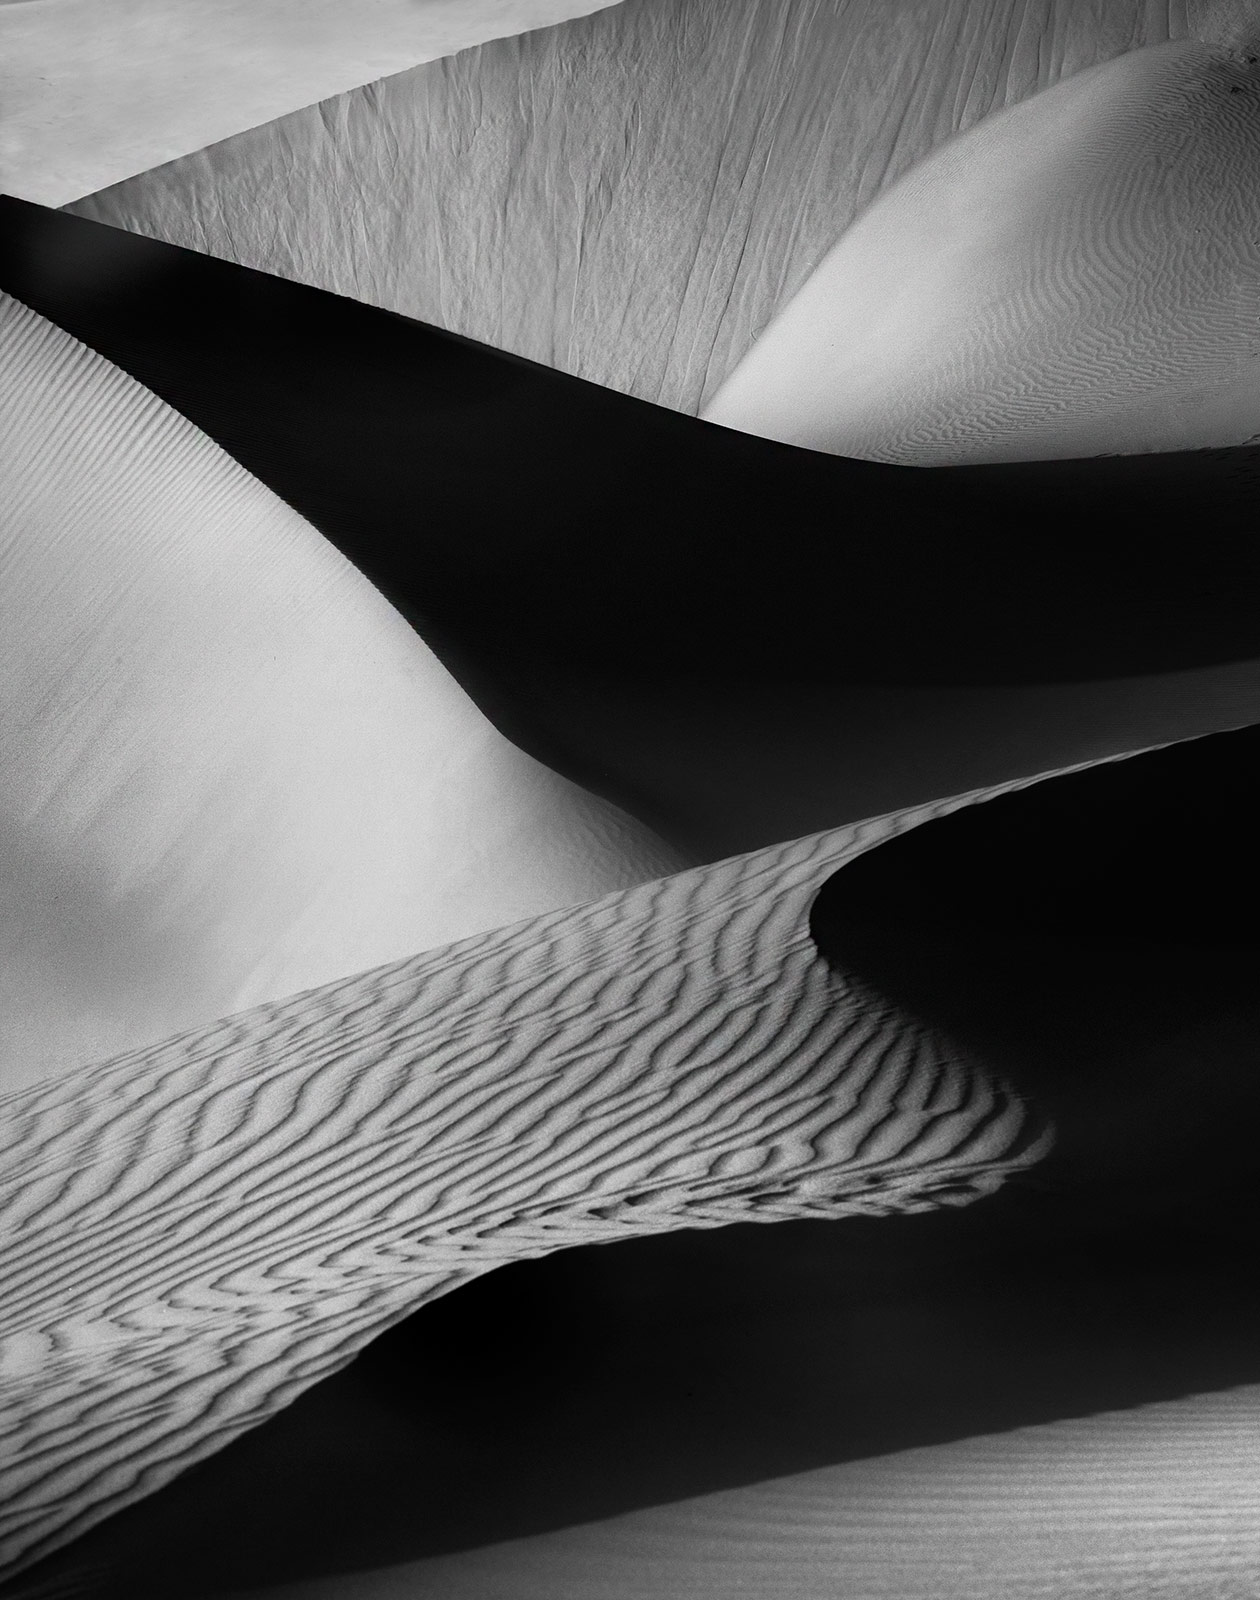 United Arab Emirates, Dunes, photo